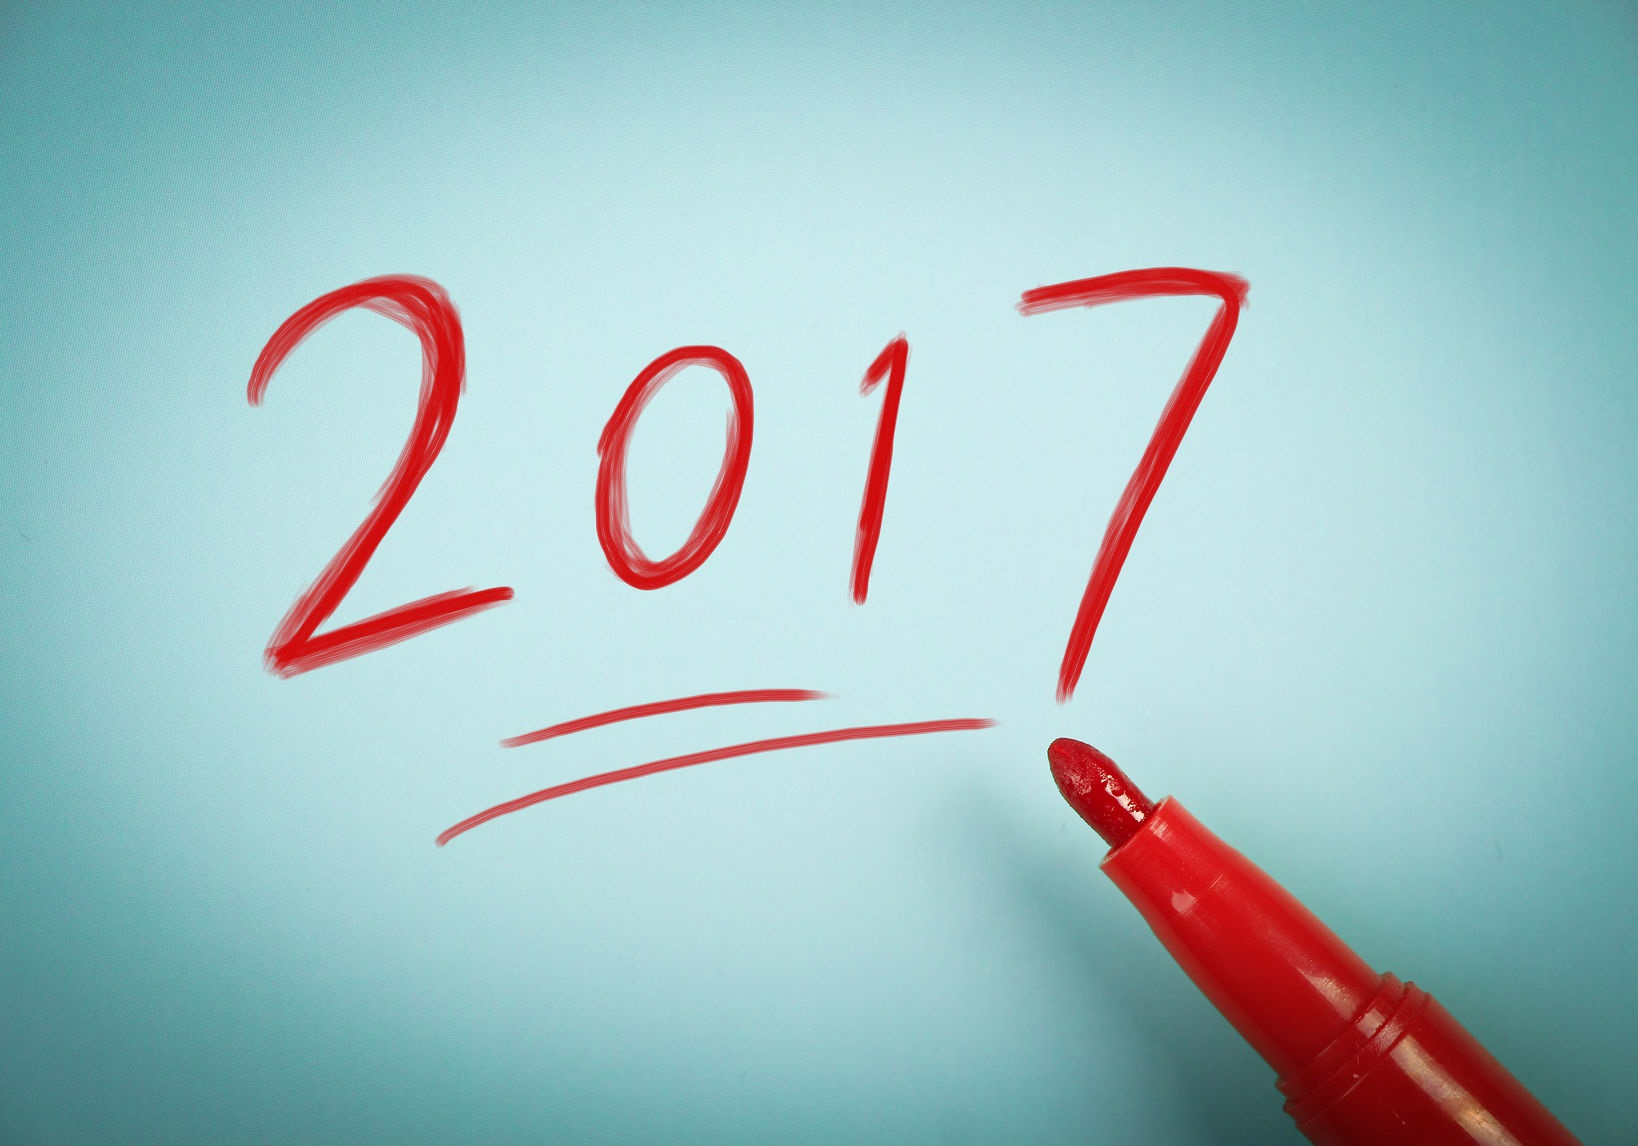 62391685 - concept of new year 2017 ahead for background used.